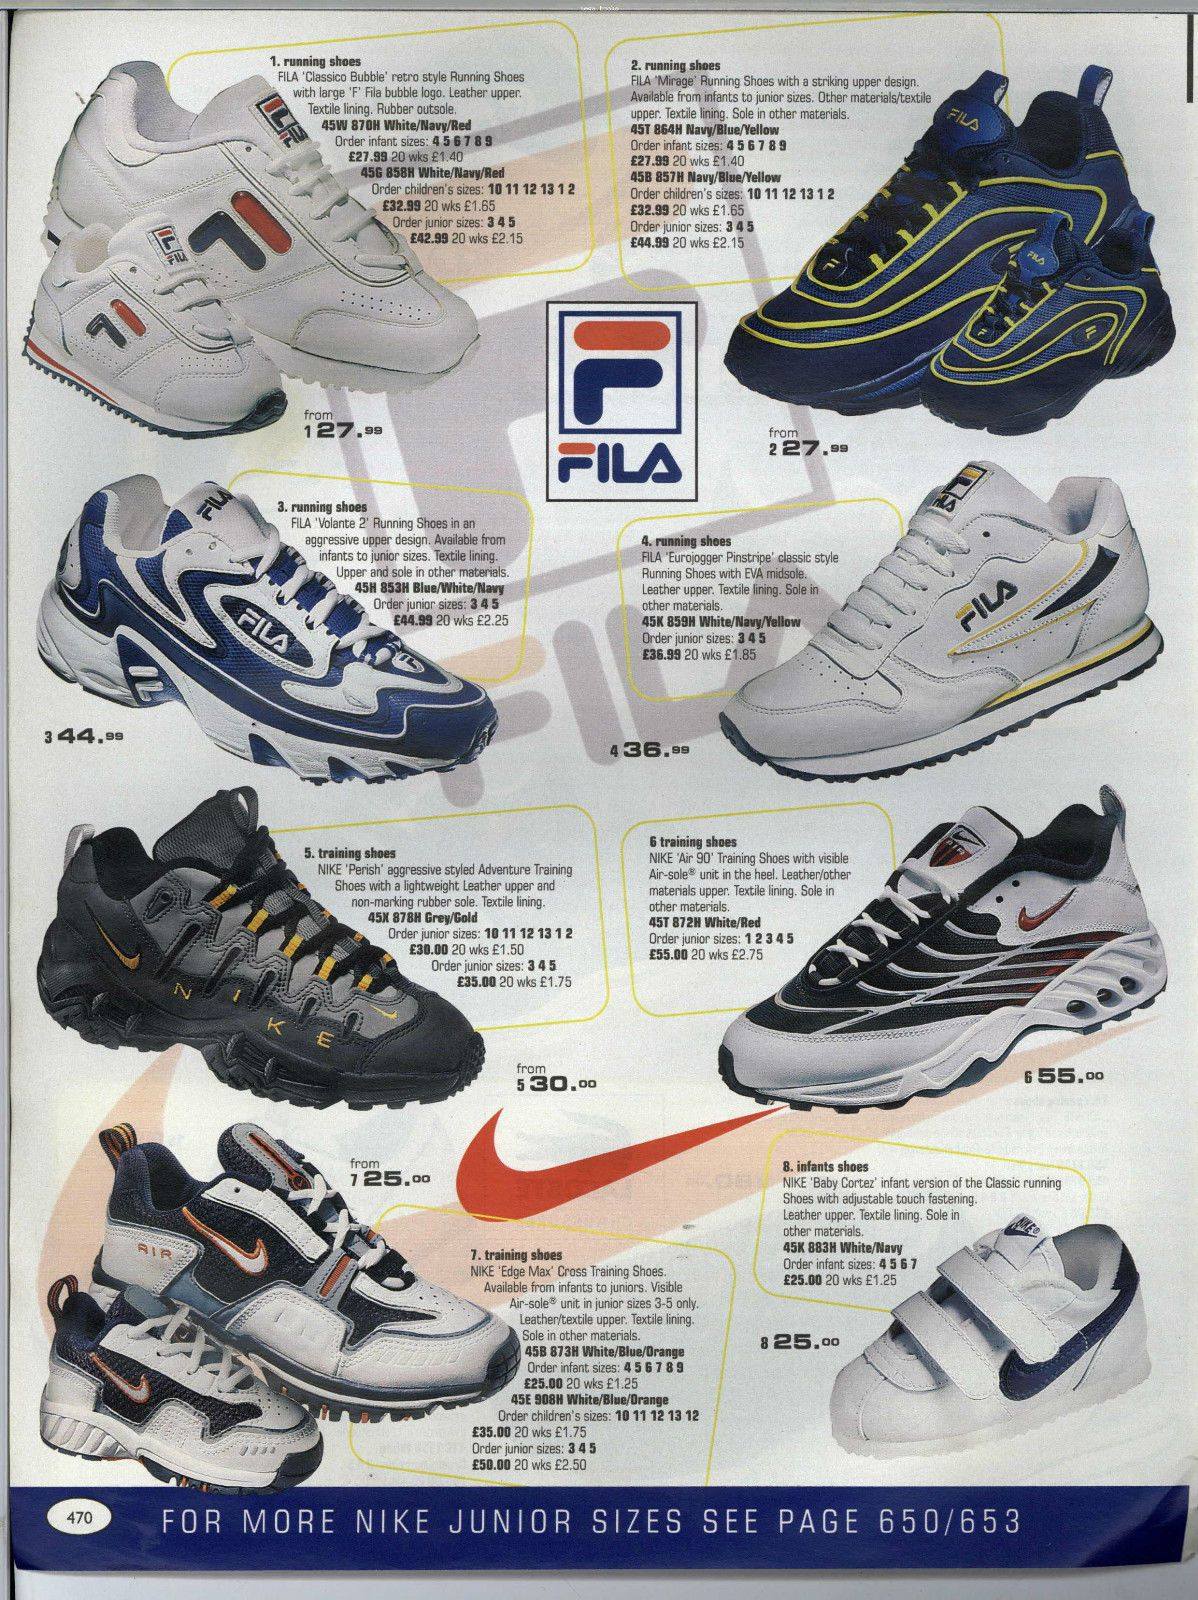 GRATTAN 1999 2000 AUTUMN AND WINTER MAIL ORDER CATALOGUE PDF JPEG FORMATS